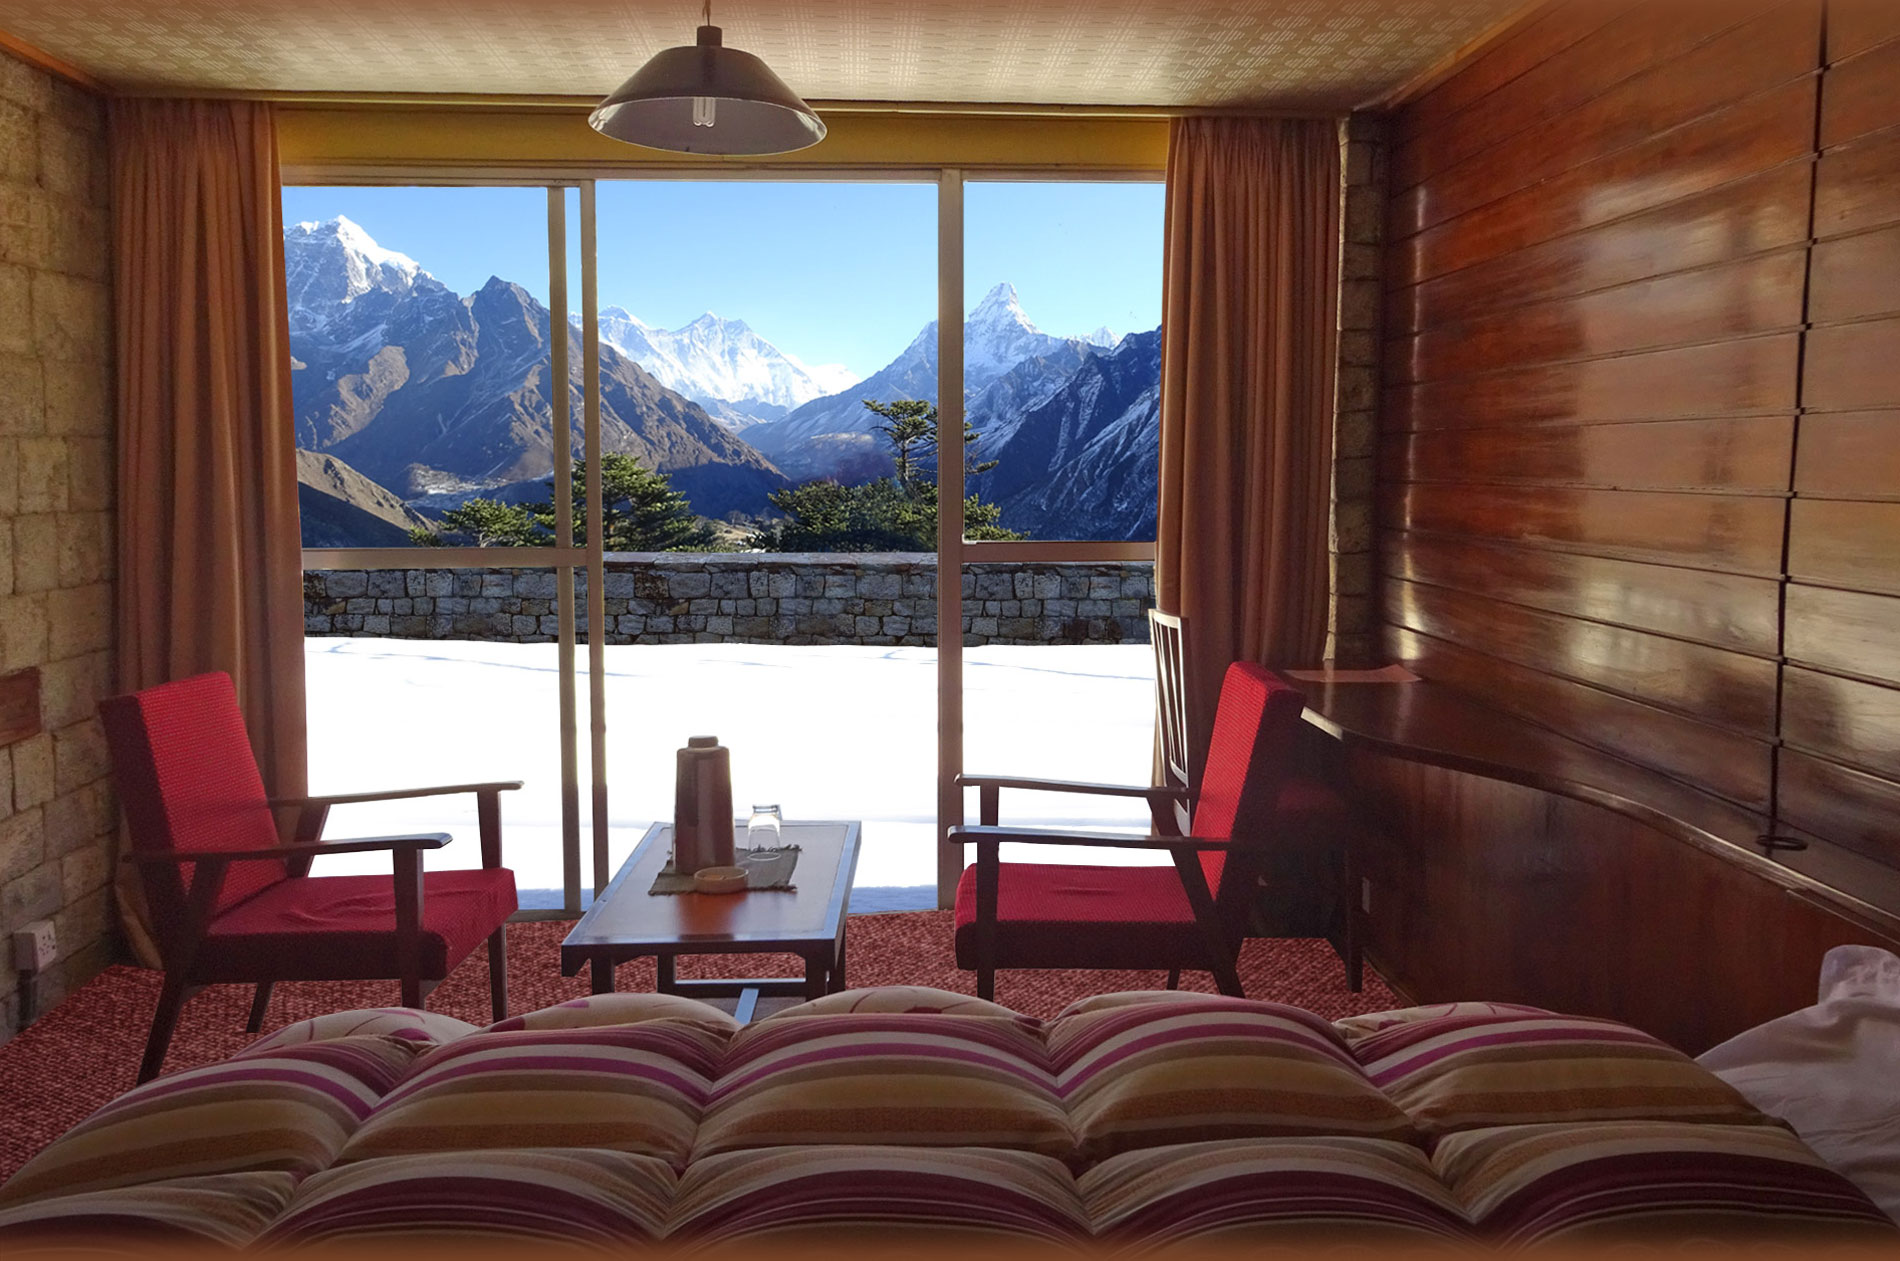 Hotel everest view a incr vel experi ncia de dormir a 3 for Small great hotels